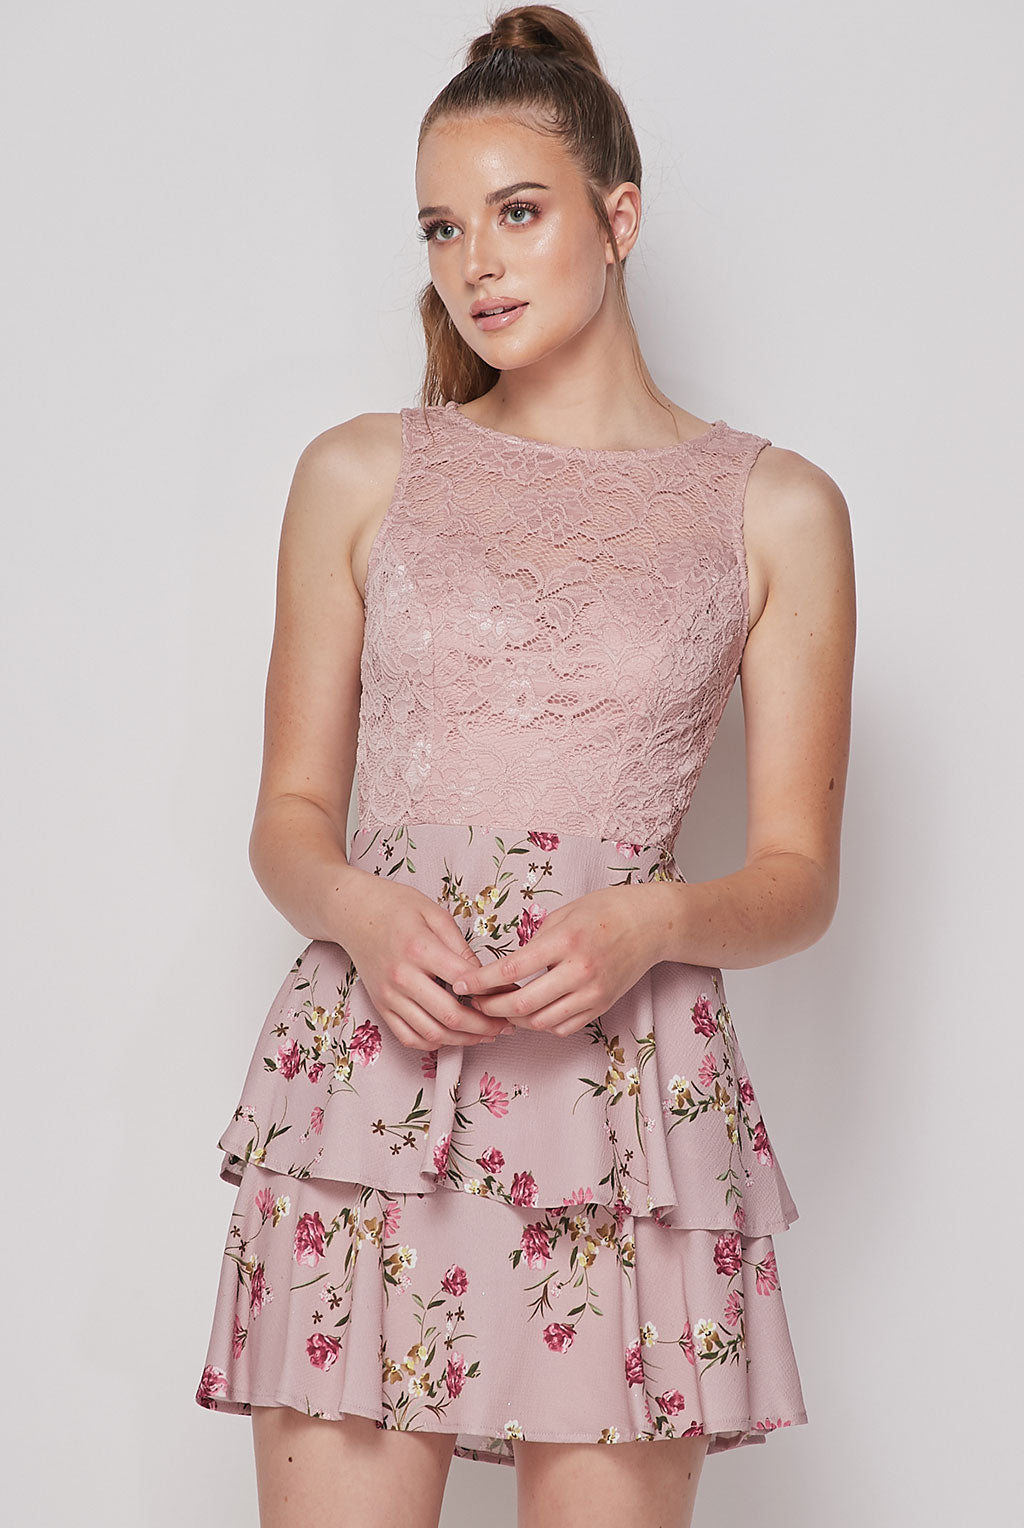 Teeze Me | Sleeveless Lace Top Printed Skirt | Dusty Rose